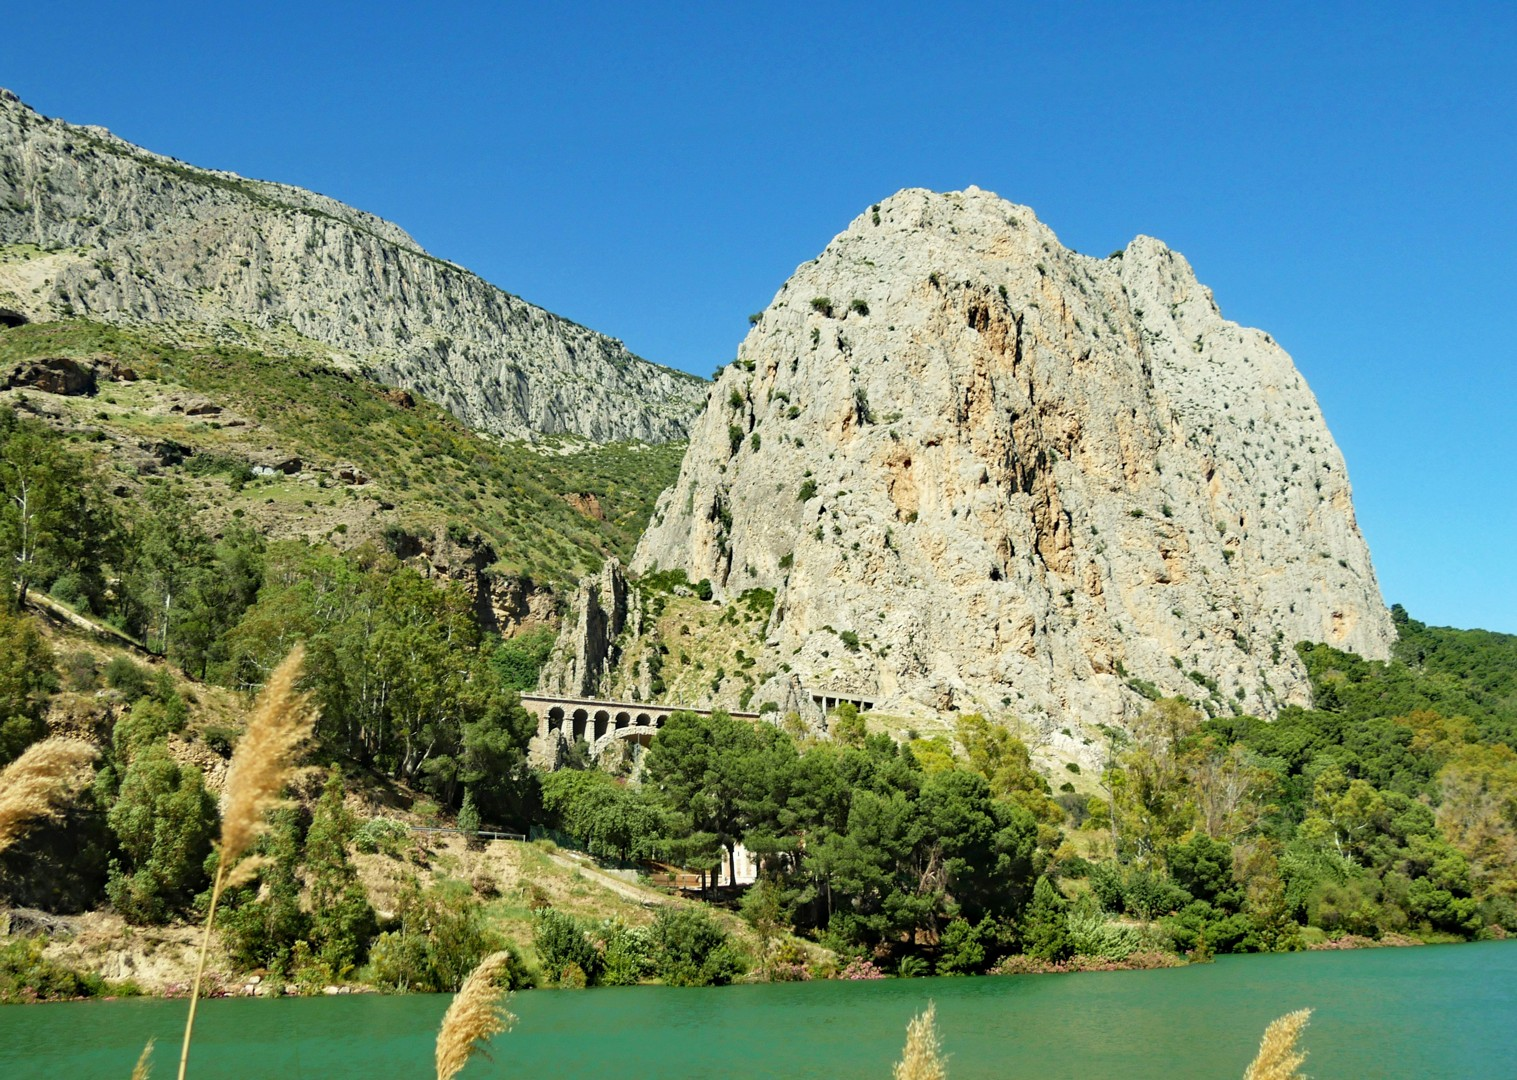 el-chorro-lake-road-cycling-trip.jpg - Spain - Del Norte al Sur - Basque Country to Andalucia - Guided Road Cycling Holiday - Road Cycling